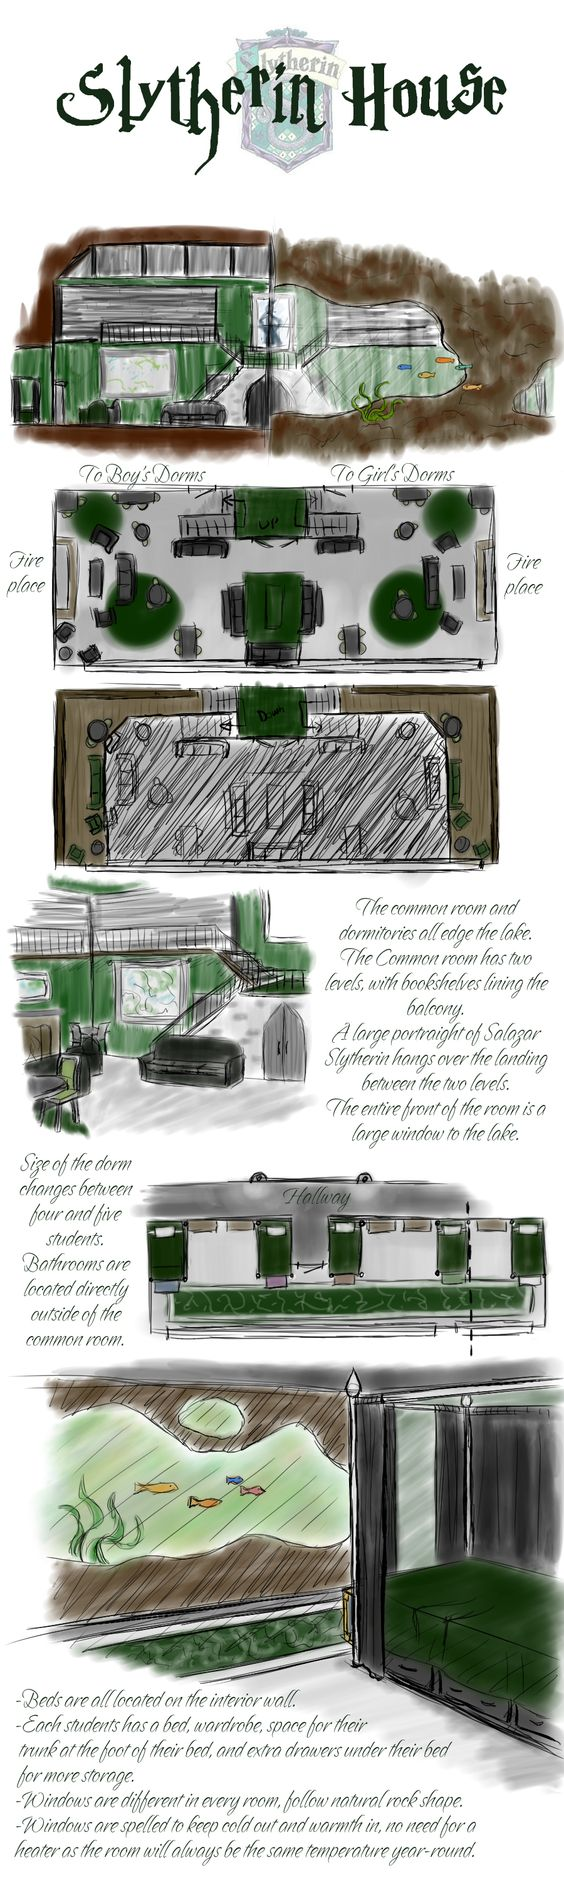 Slytherin House by *Whisperwings on deviantART     I think I would definitely be a slytherin.  Hopefully not a dick though.: